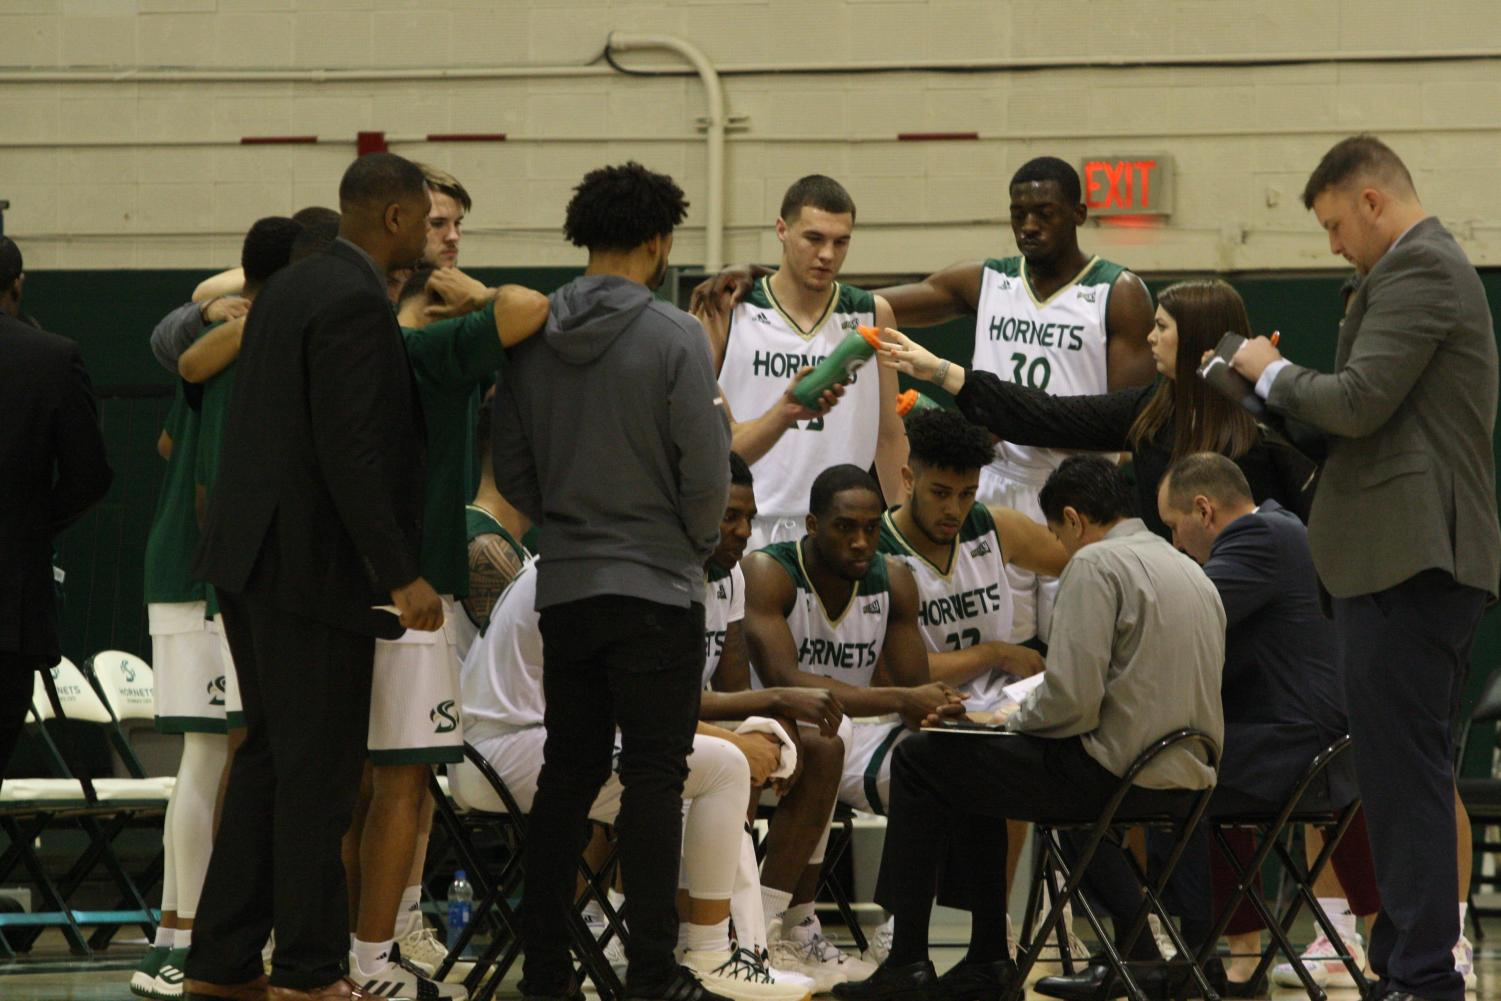 Sac State head coach Brian Katz talks to the Hornets during a timeout. Sac State lost to Northern Arizona 78-66.